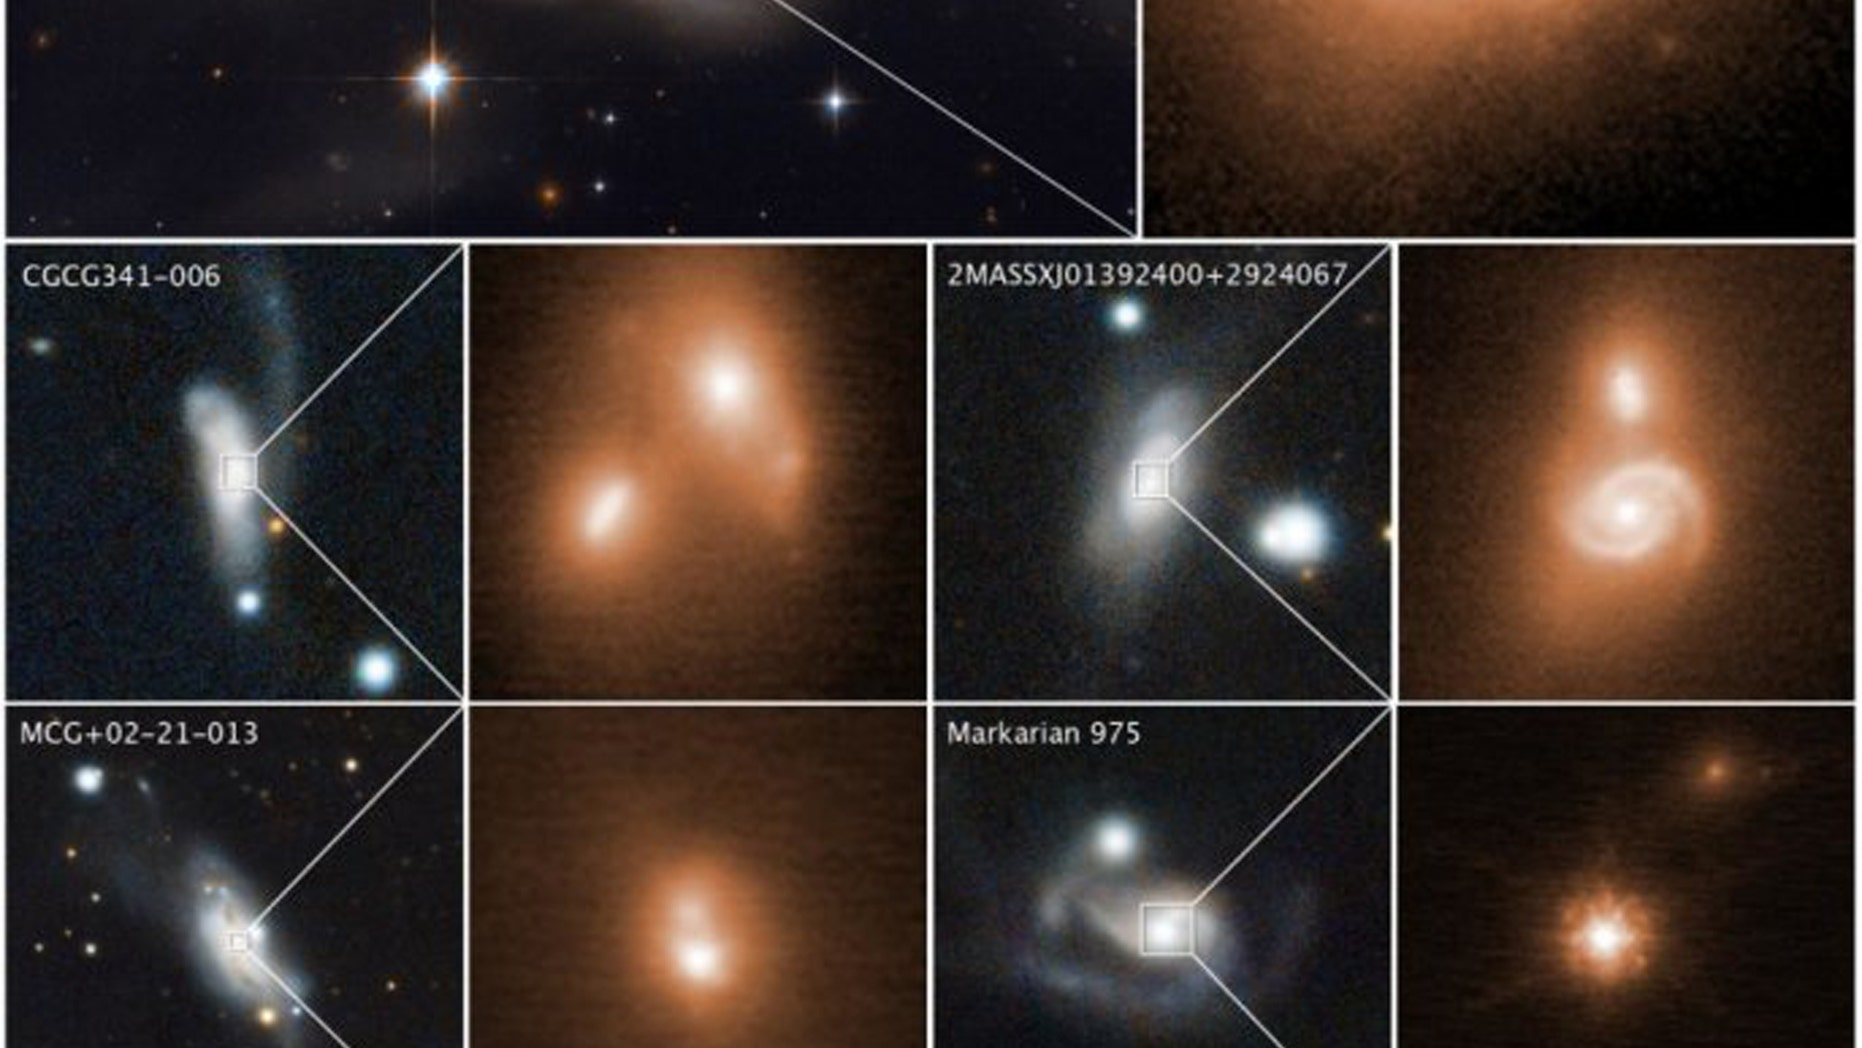 These images reveal the final stage of the union of pairs of galactic nuclei in confused bricks of colliding galaxies. Credit: Nas